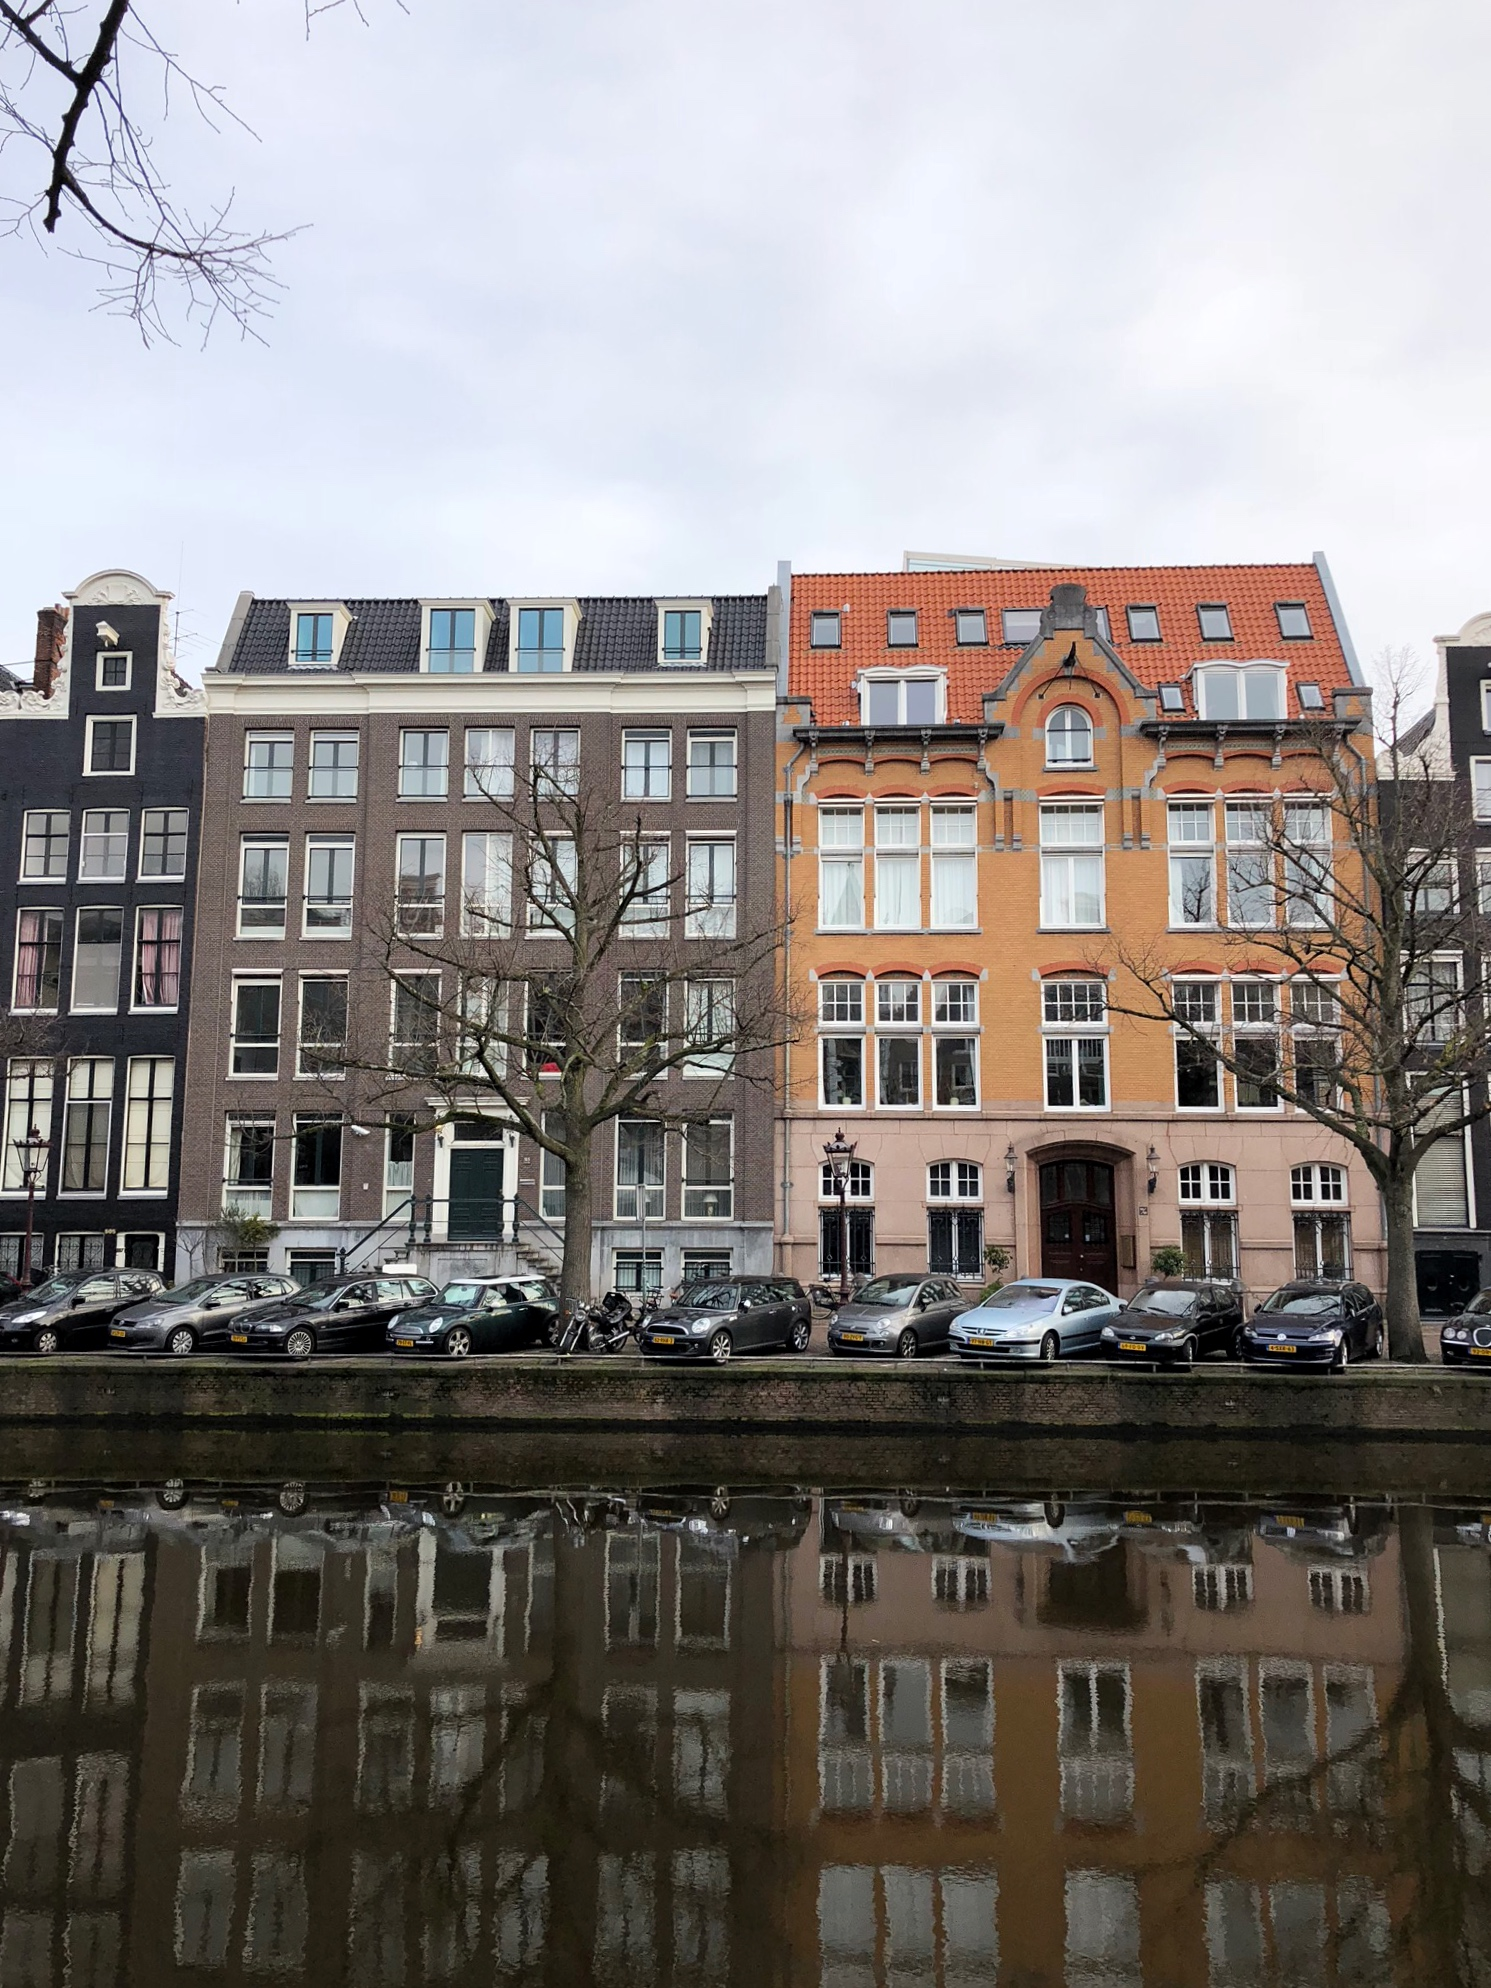 Amsterdam canals - 3 days in Amsterdam featured by popular Washington DC travel blogger, Monica Dutia